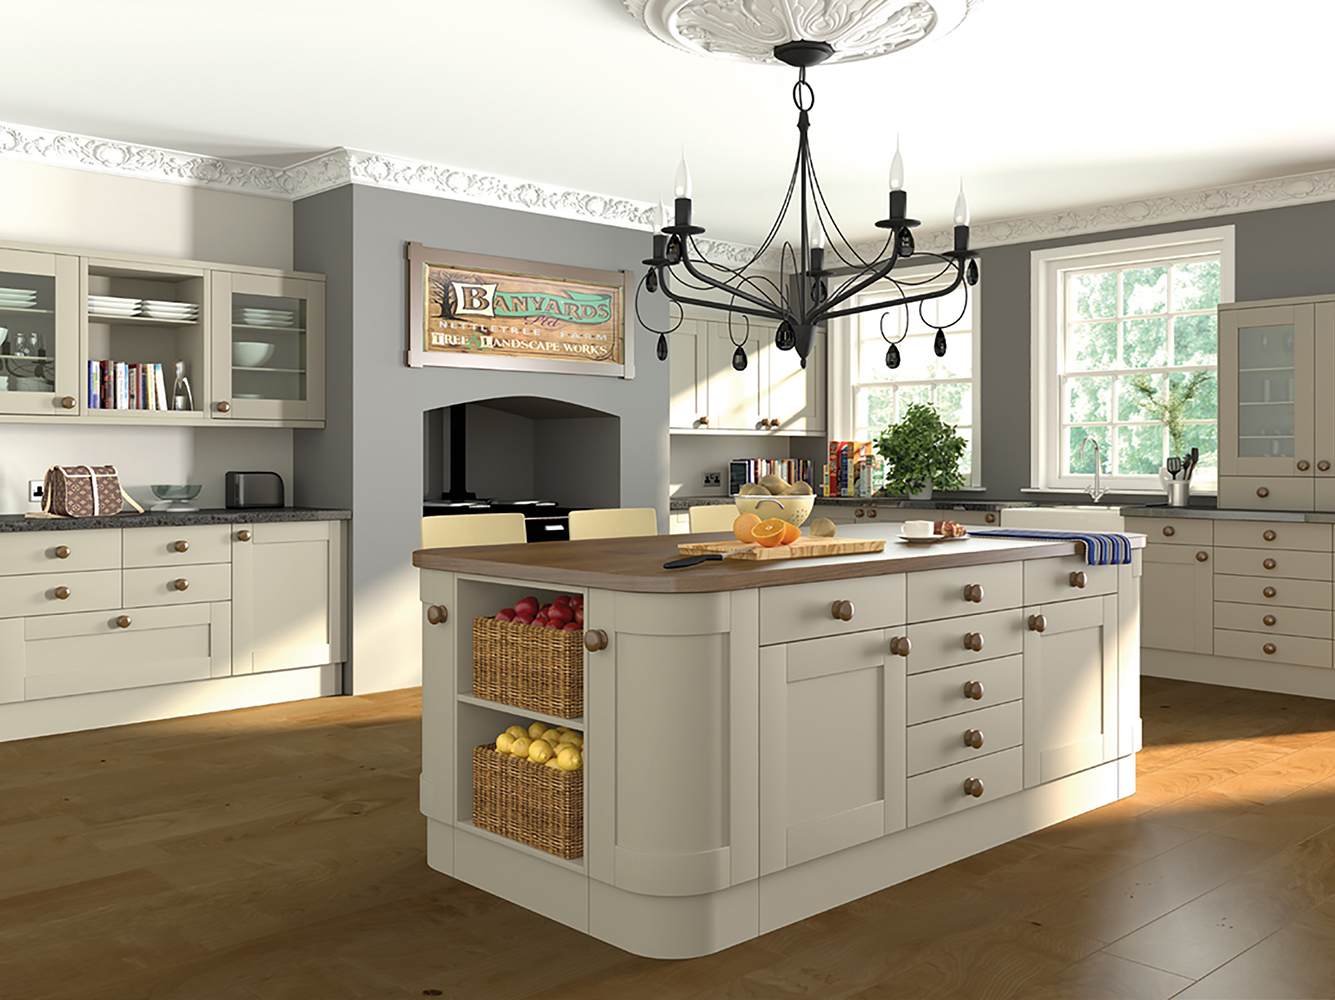 Kitchen2_1335x1000.jpg